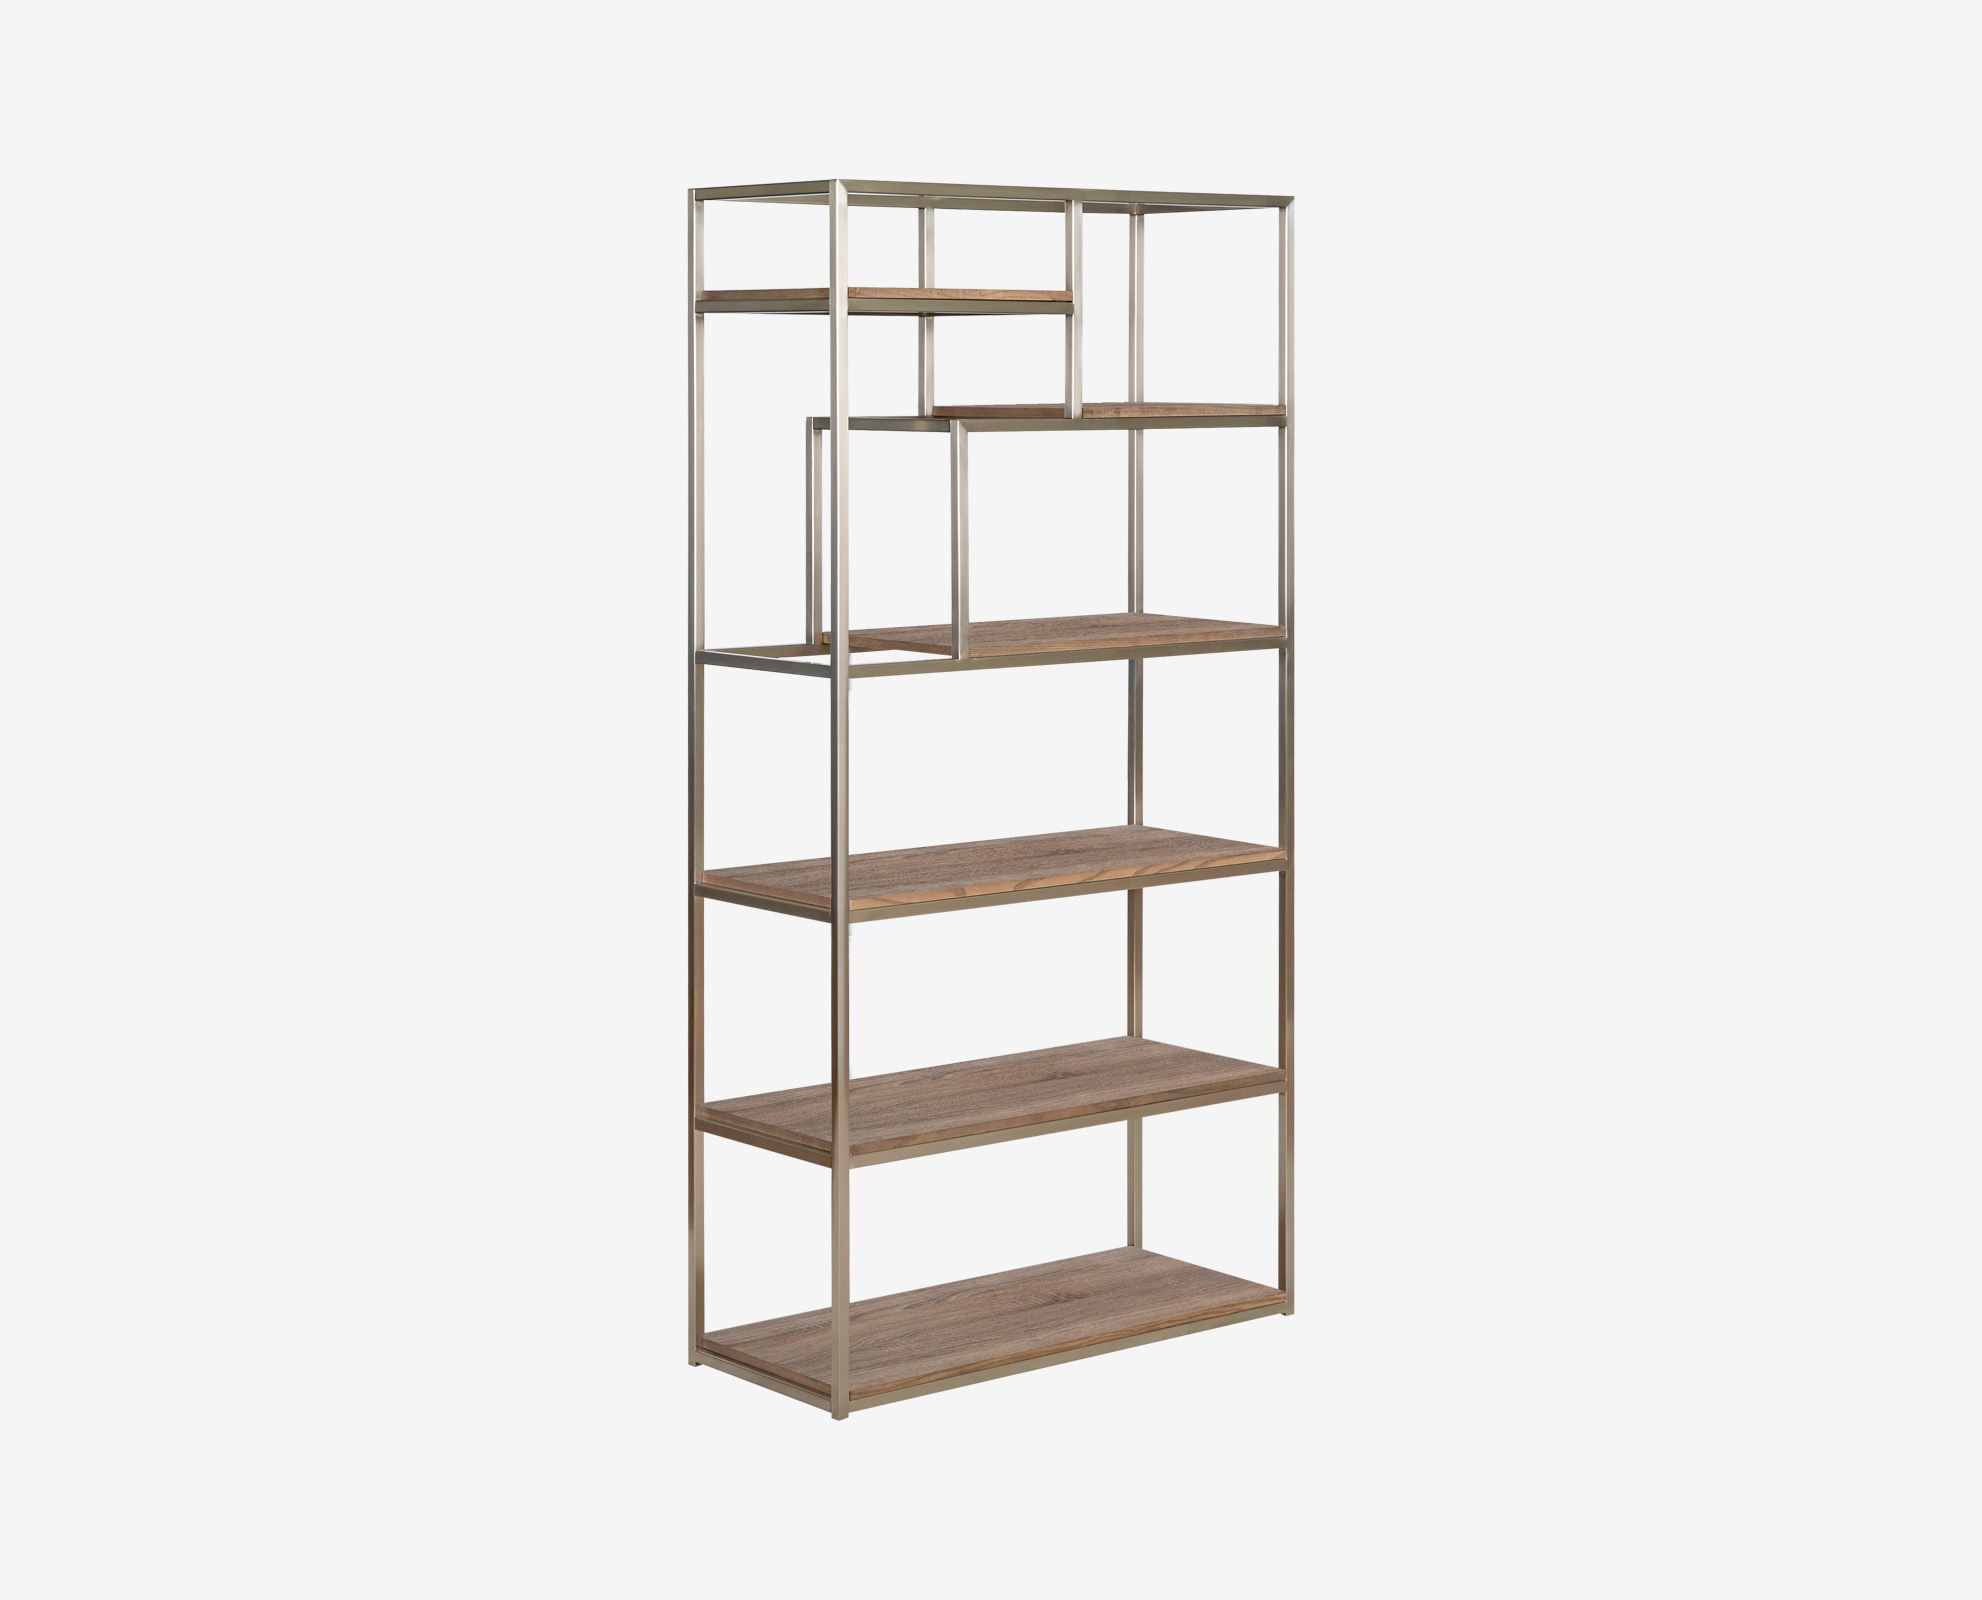 Scandinavian Designs  The Adelig Bookcase Is Transitional In Style,